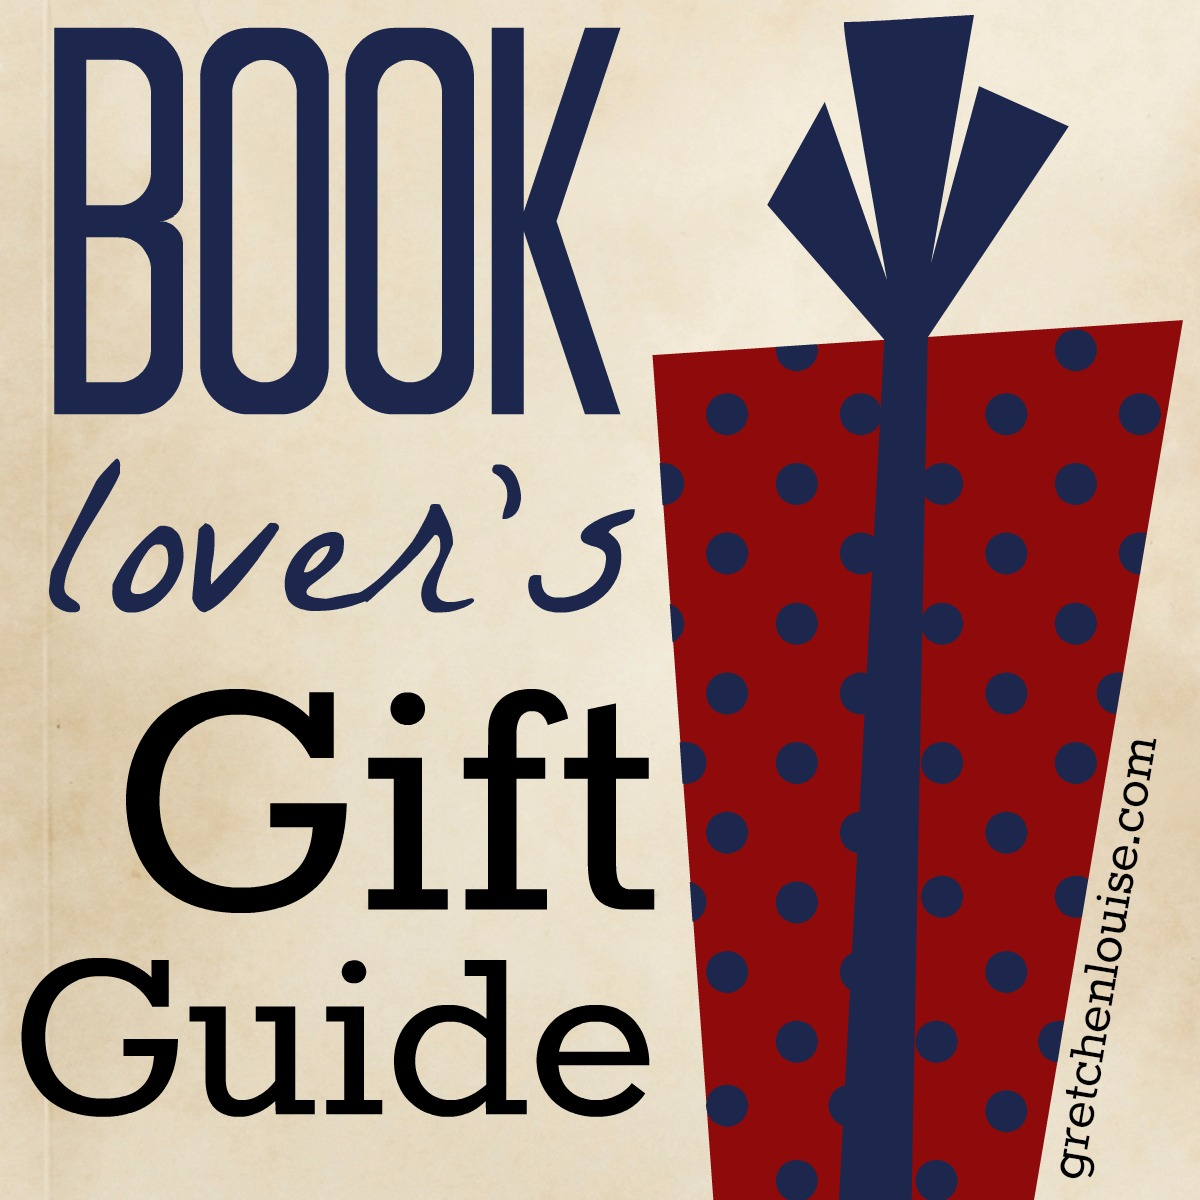 Book Lover Gift A Book Lover 39s Gift Guide Gretchen Louise